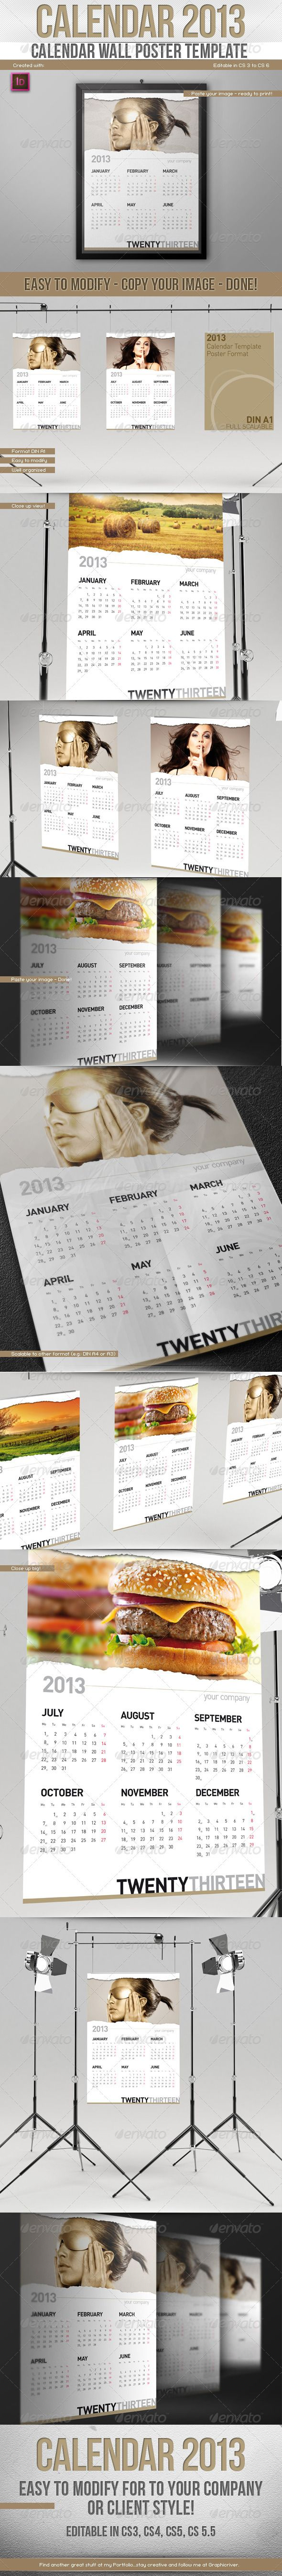 Calendar wall, Poster templates and Wall posters on Pinterest